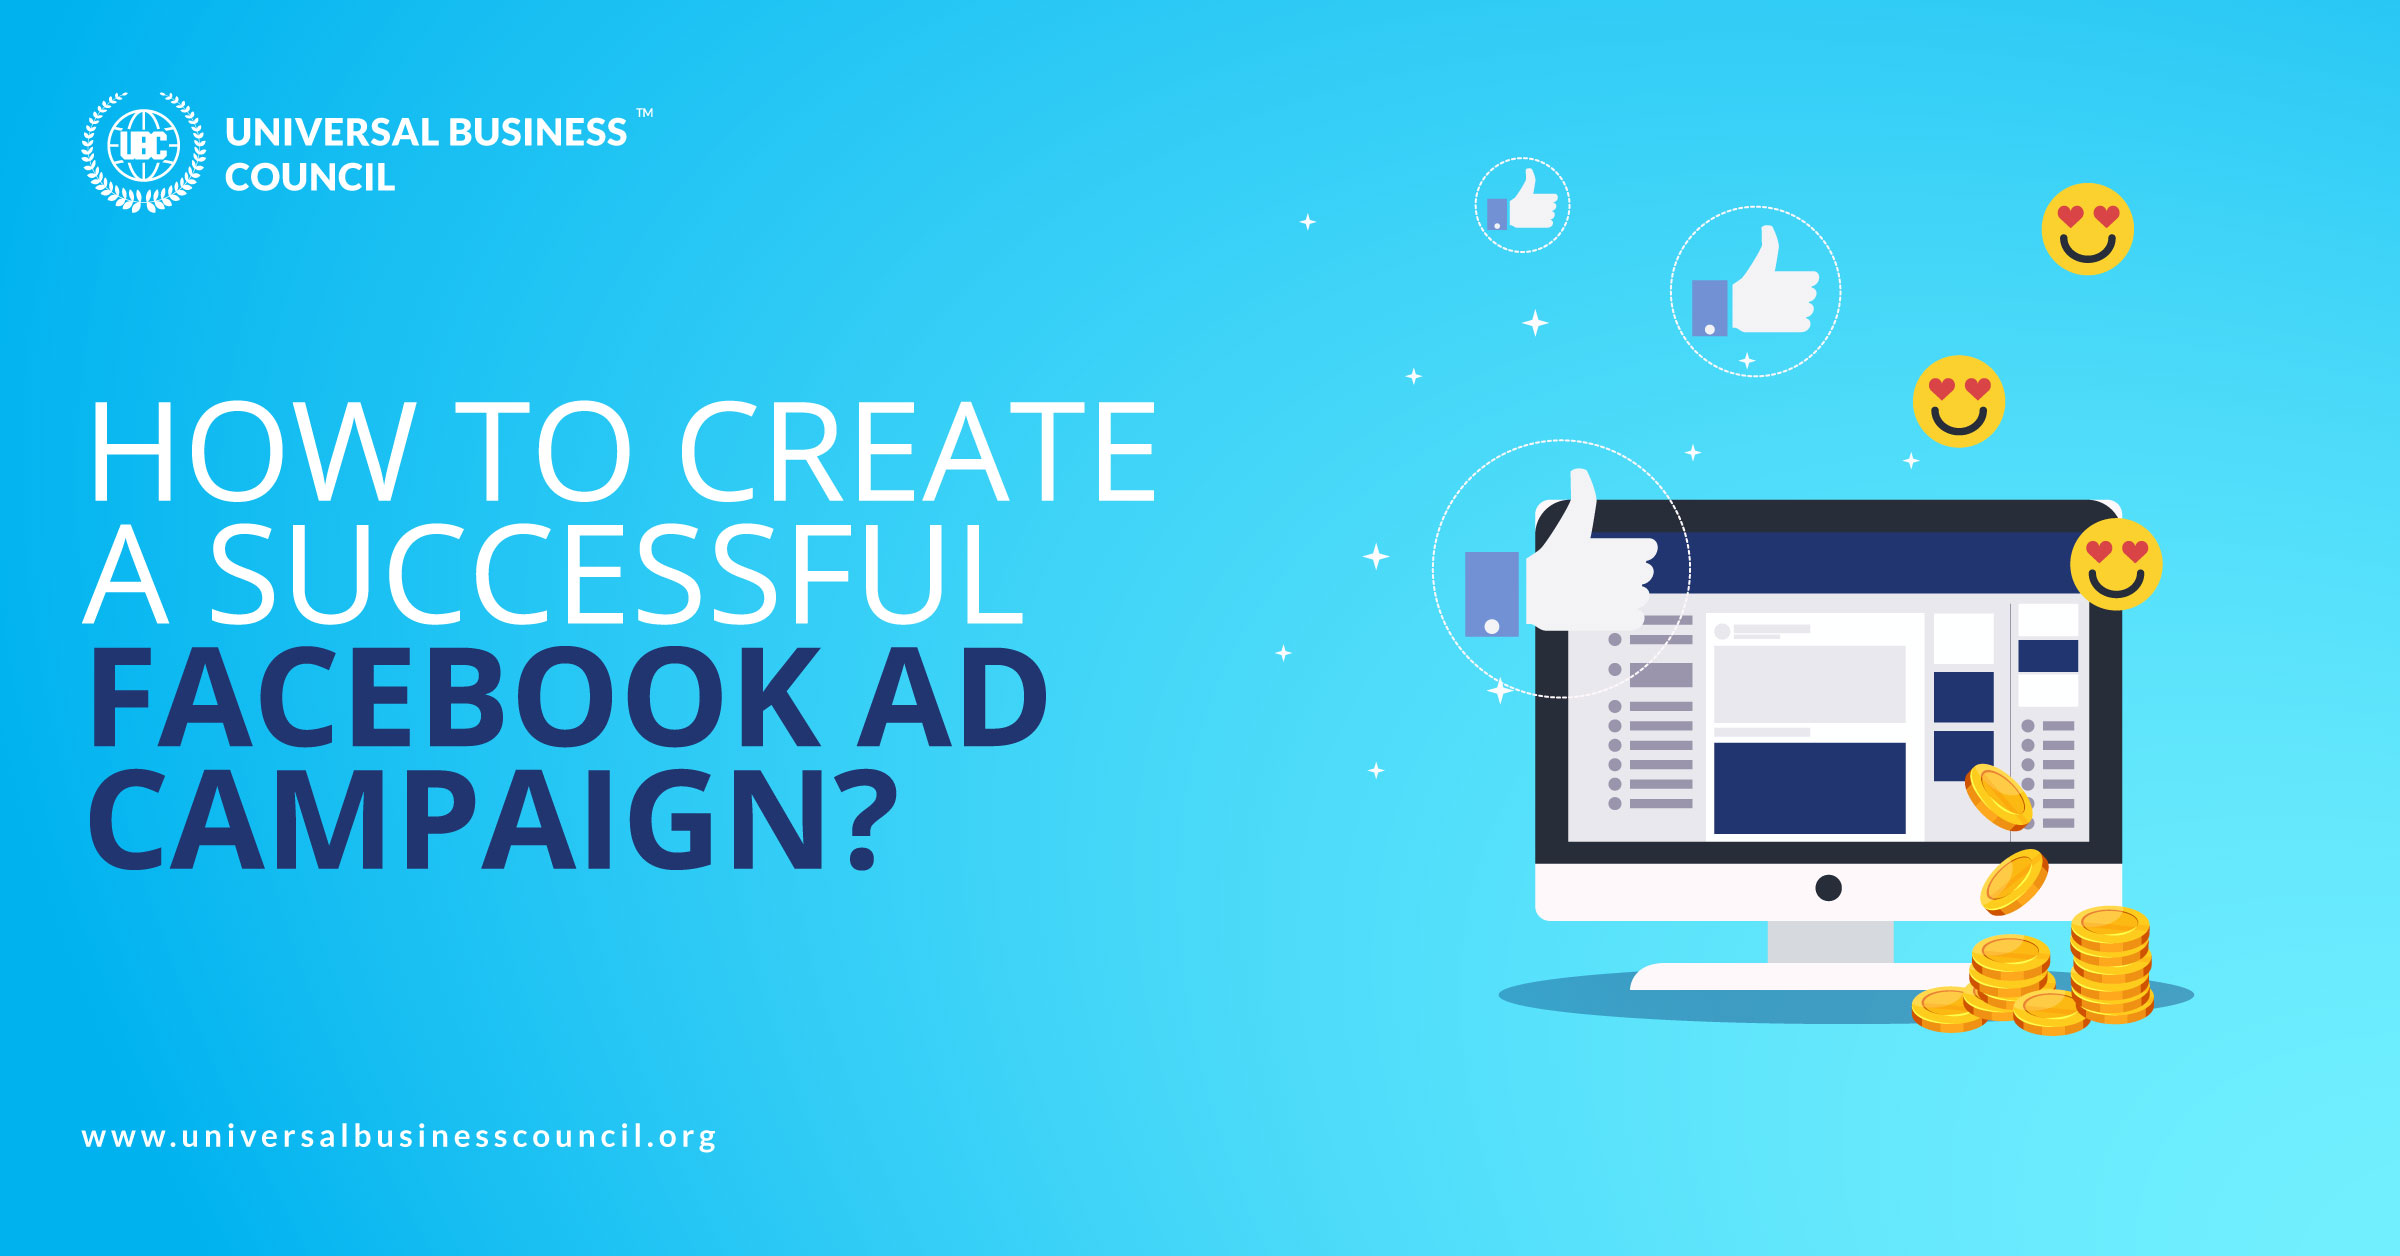 How-To-Create-A-Successful-Facebook-Ad-Campaign